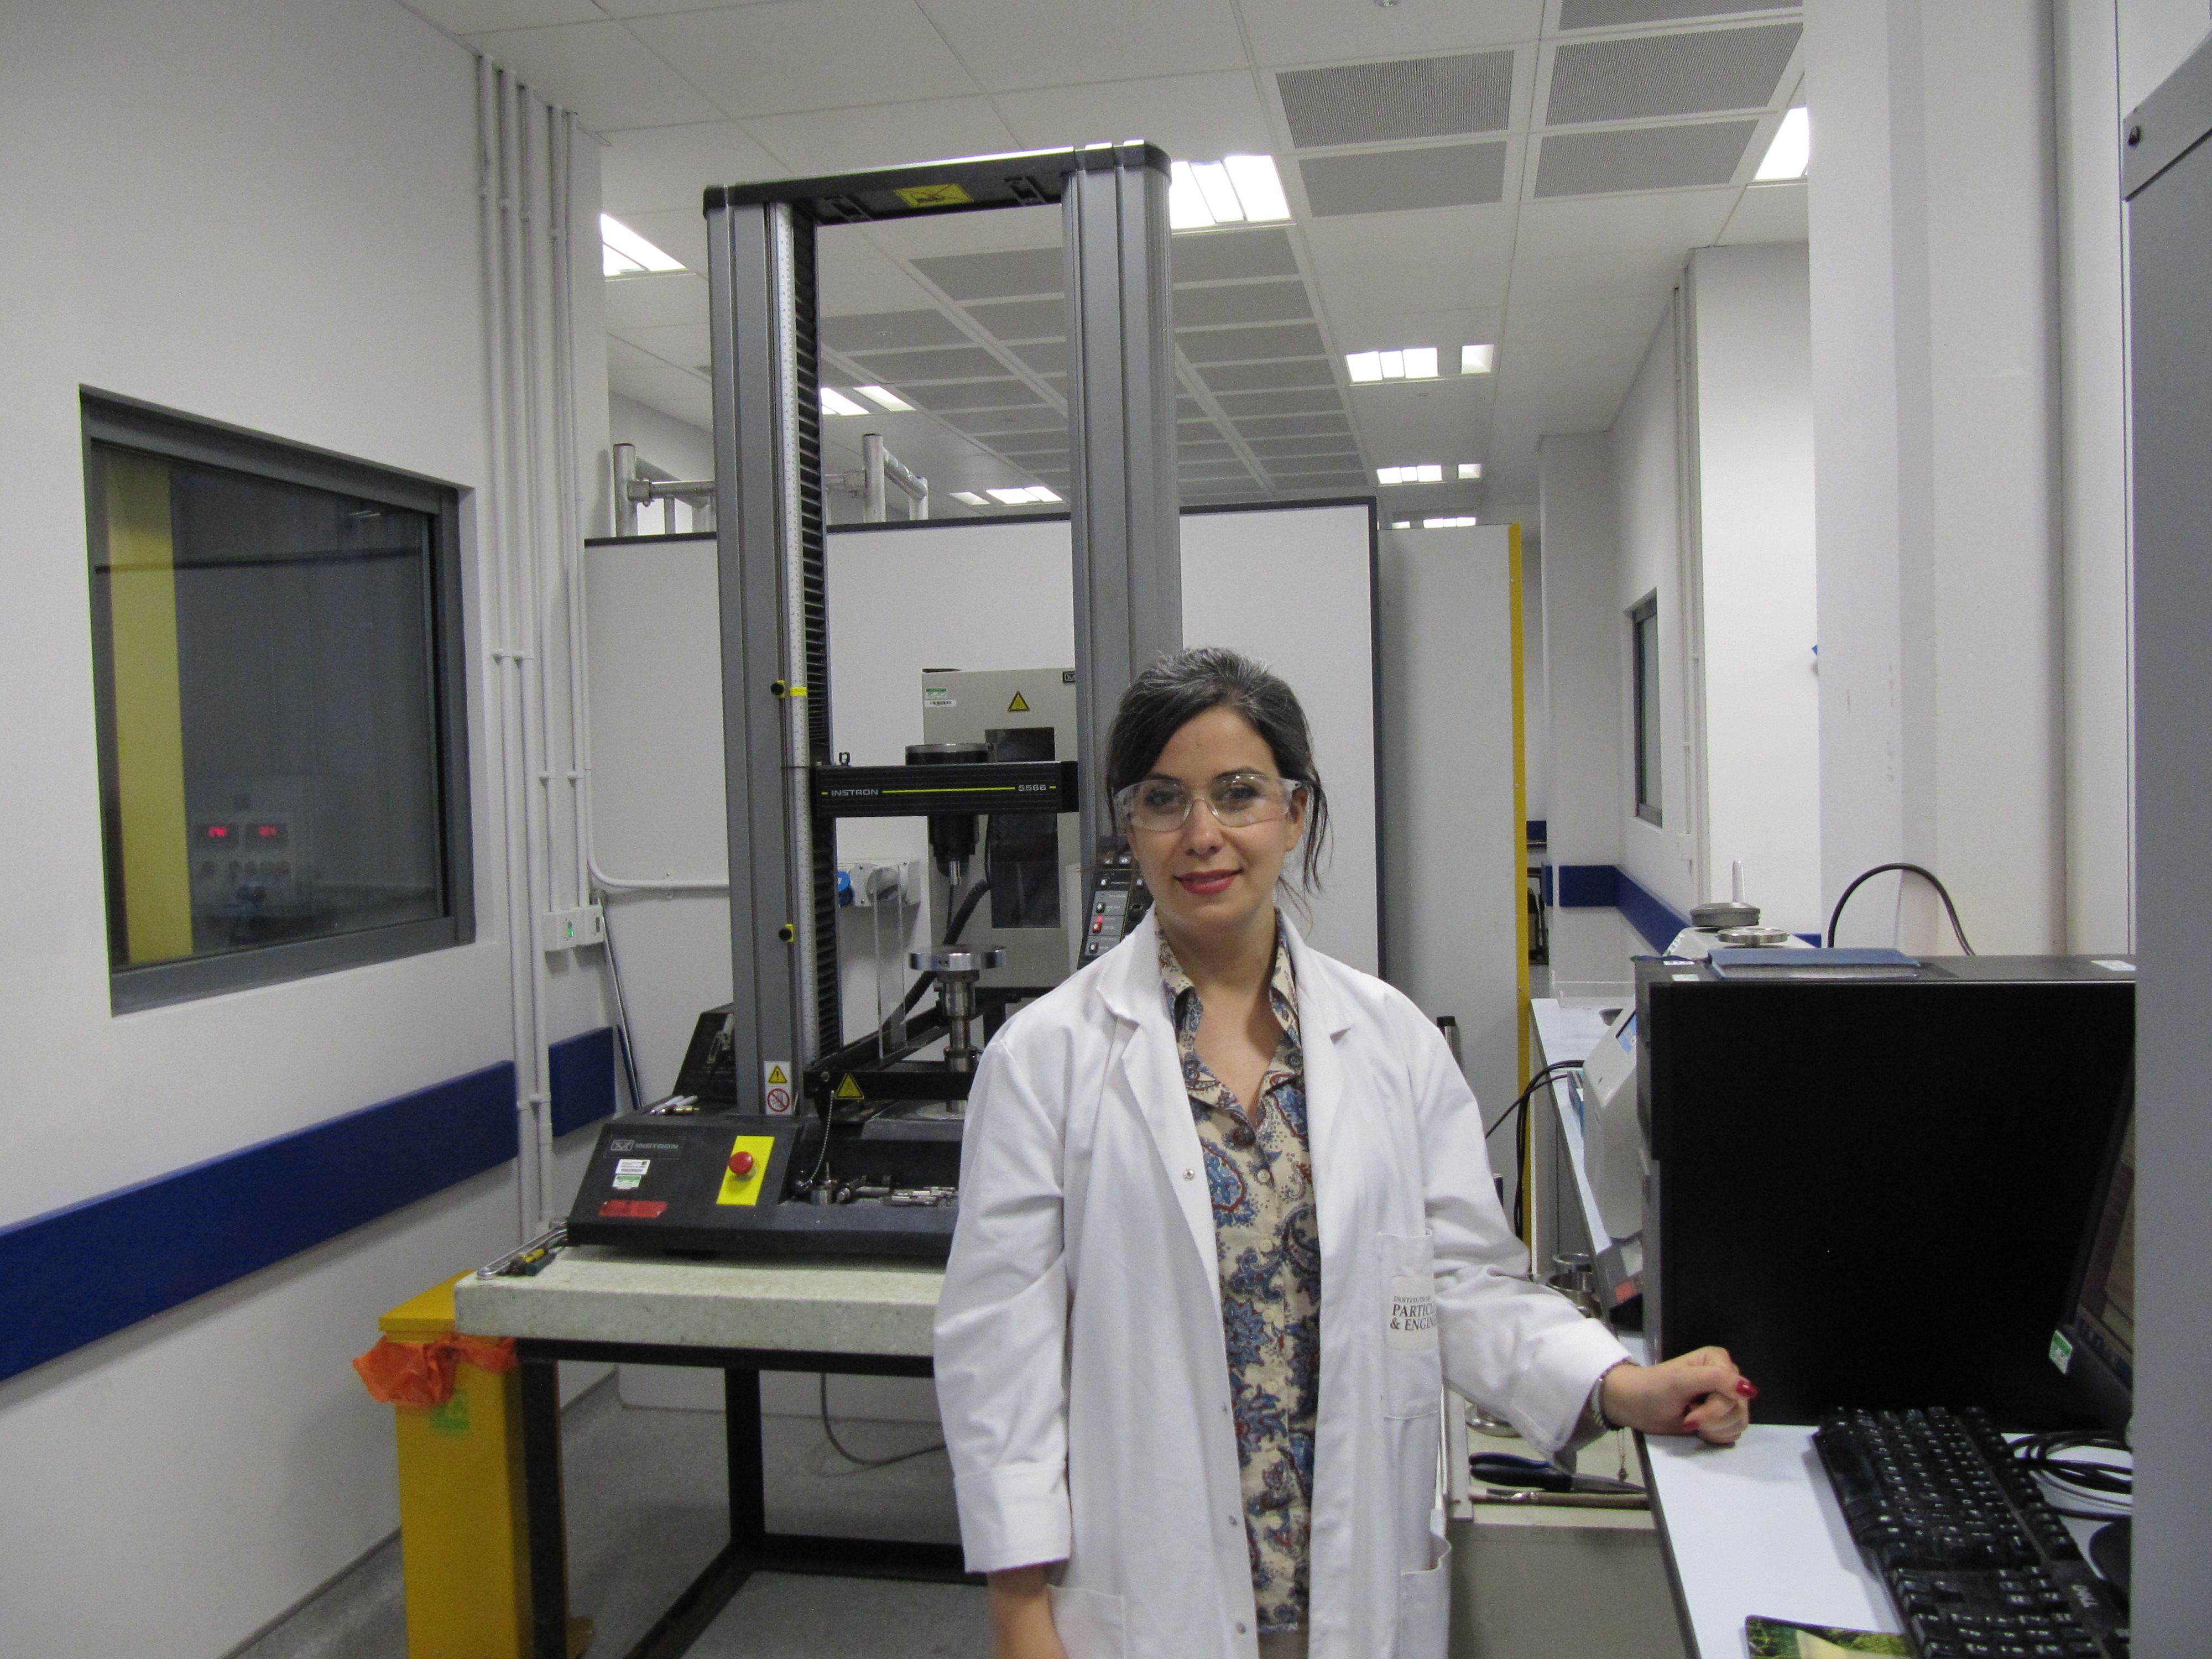 Mozhdeh Mehrabi, PhD Researcher, University of Leeds - Mozhdeh Mehrabi, PhD Researcher, University of Leeds, in the lab